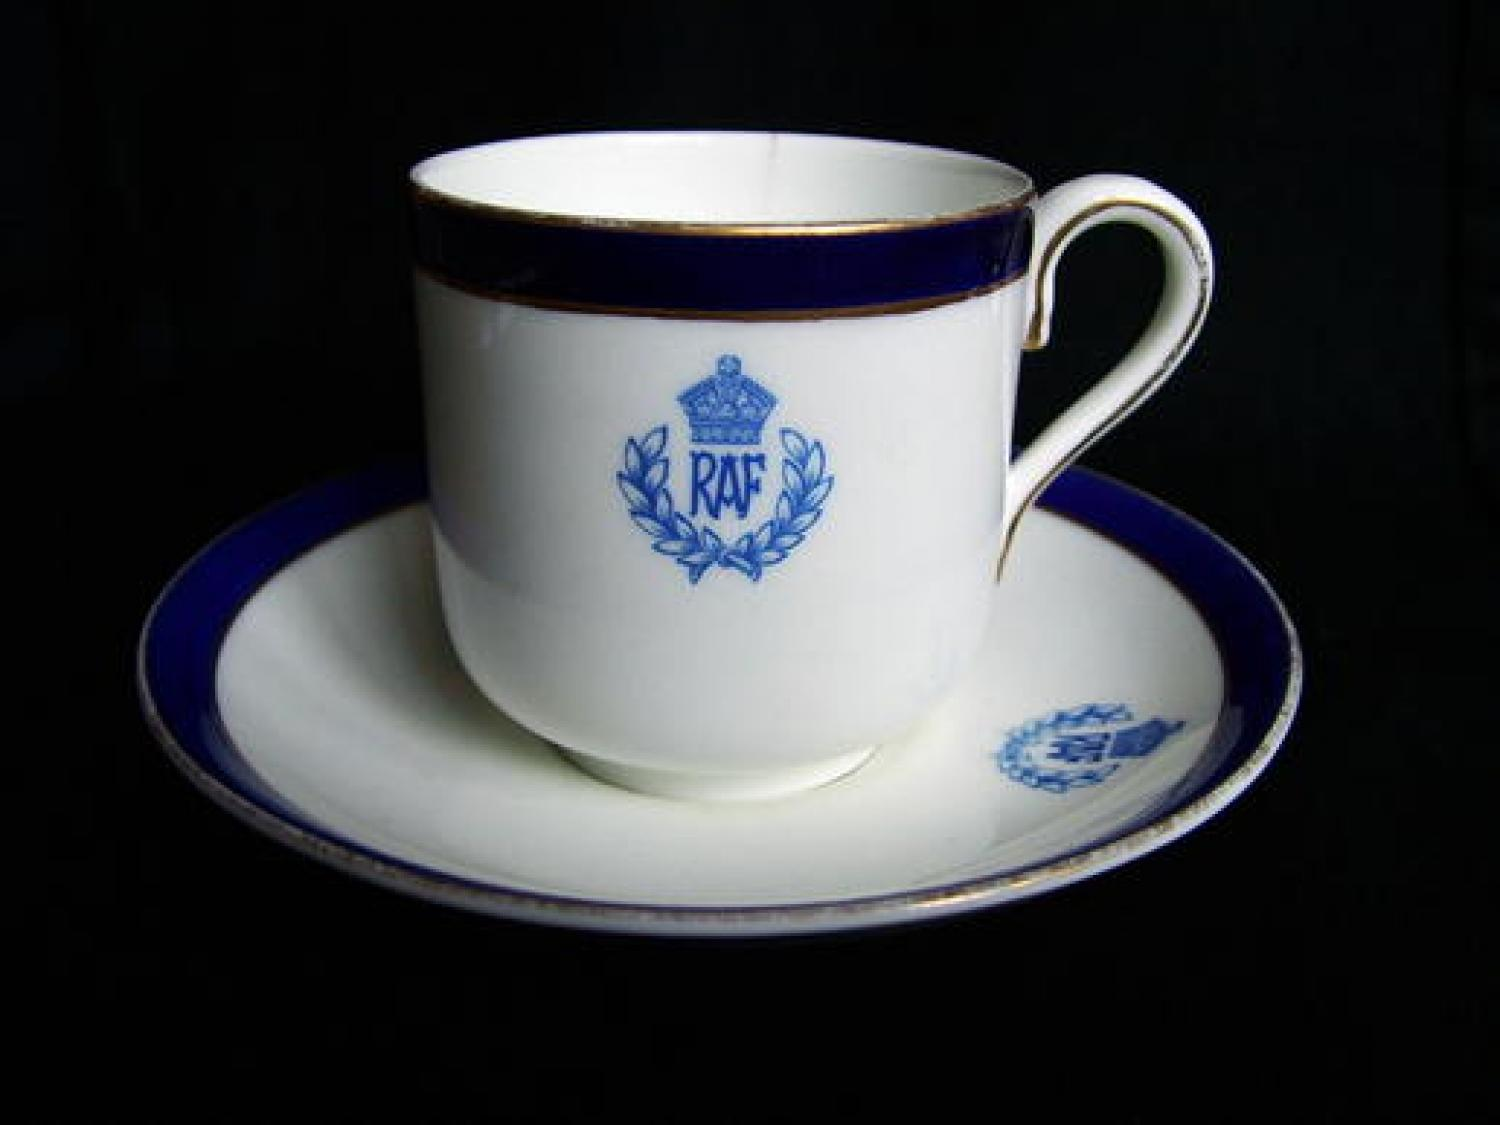 RAF Officers' Mess Coffee Cup & Saucer